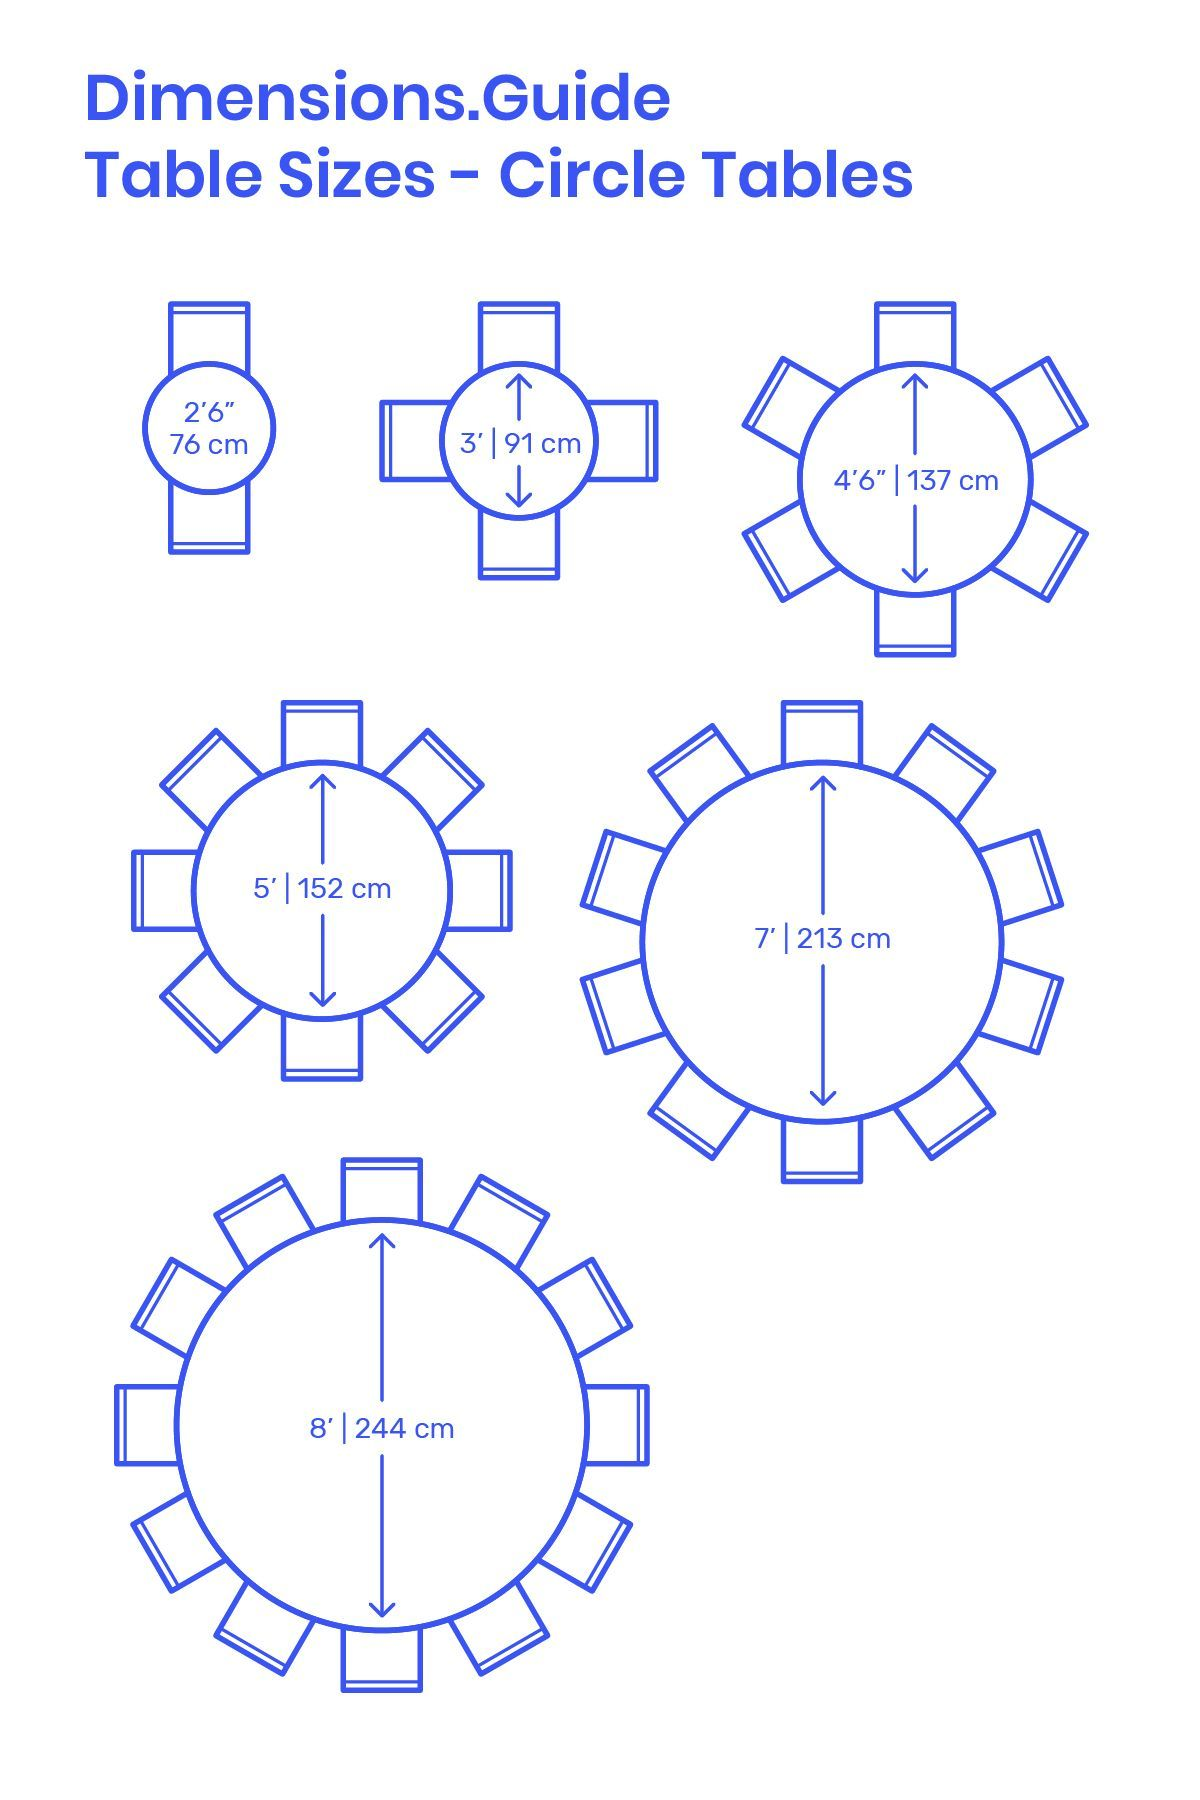 Circular Tables Are Space Efficient Tables Designed With A Variety Of Common Diameters Smal In 2020 Dining Table Dimensions Round Dining Room Table Dining Table Sizes